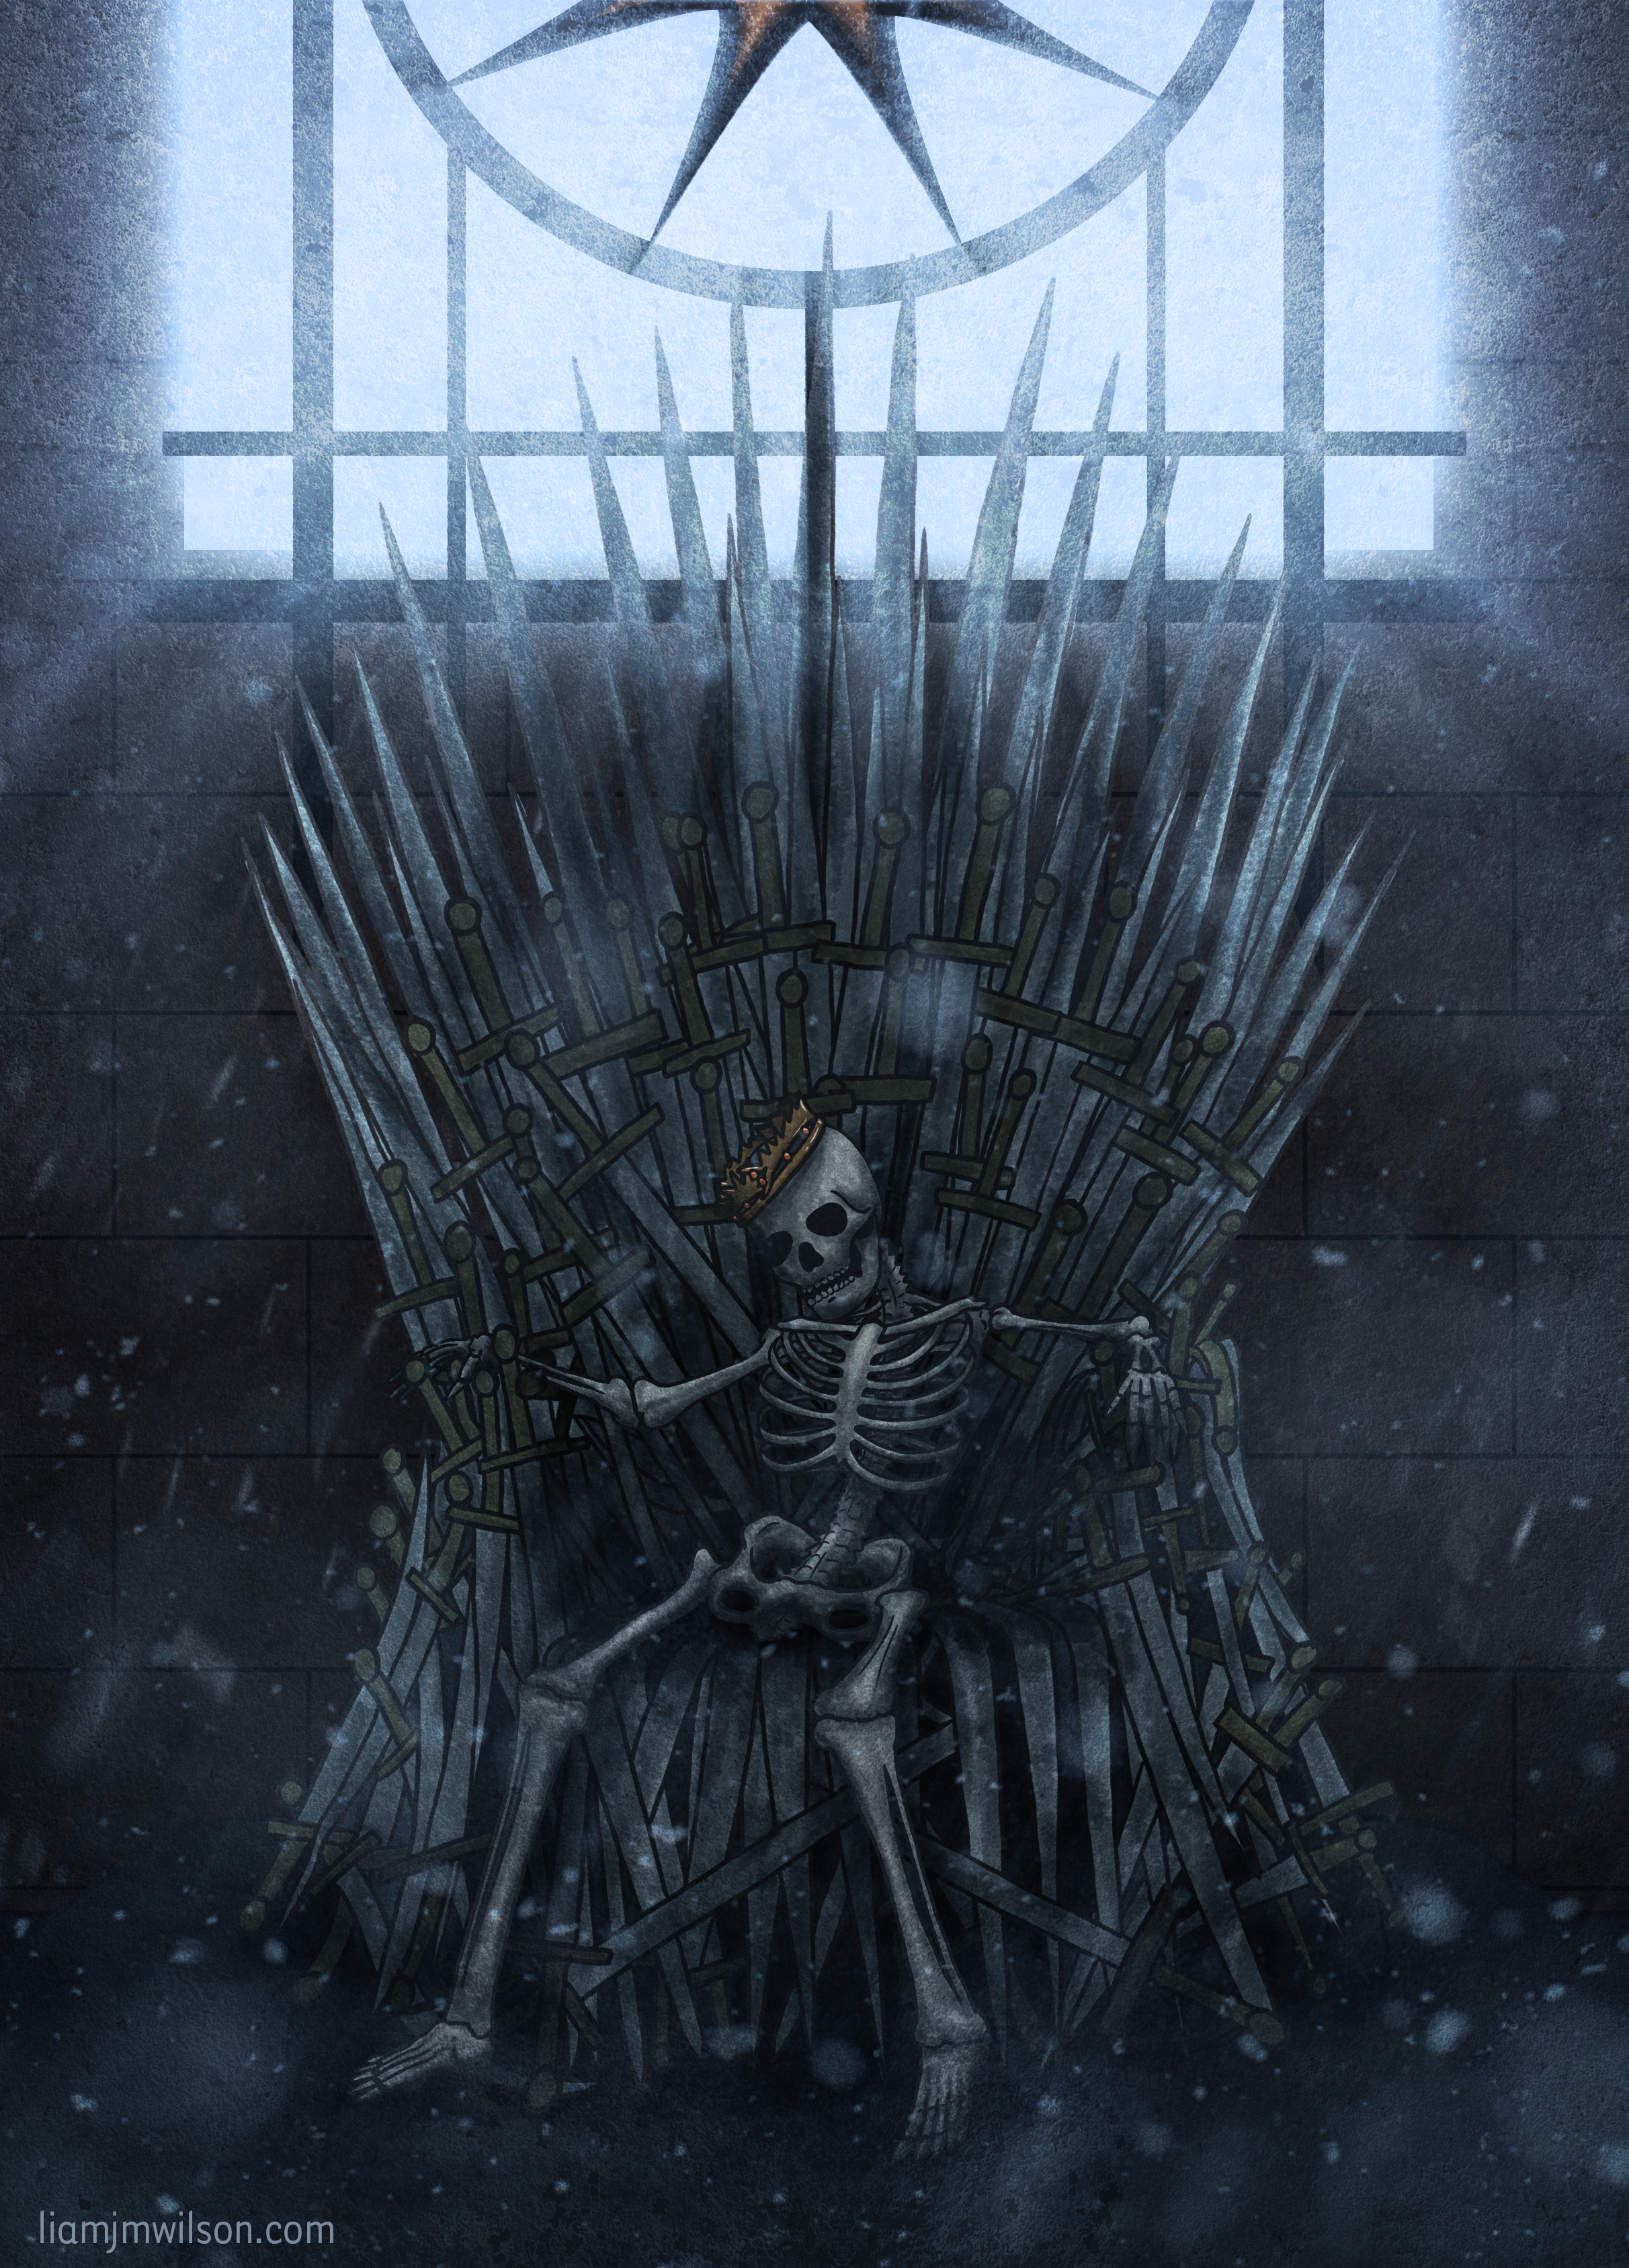 Skeleton on the Iron Throne